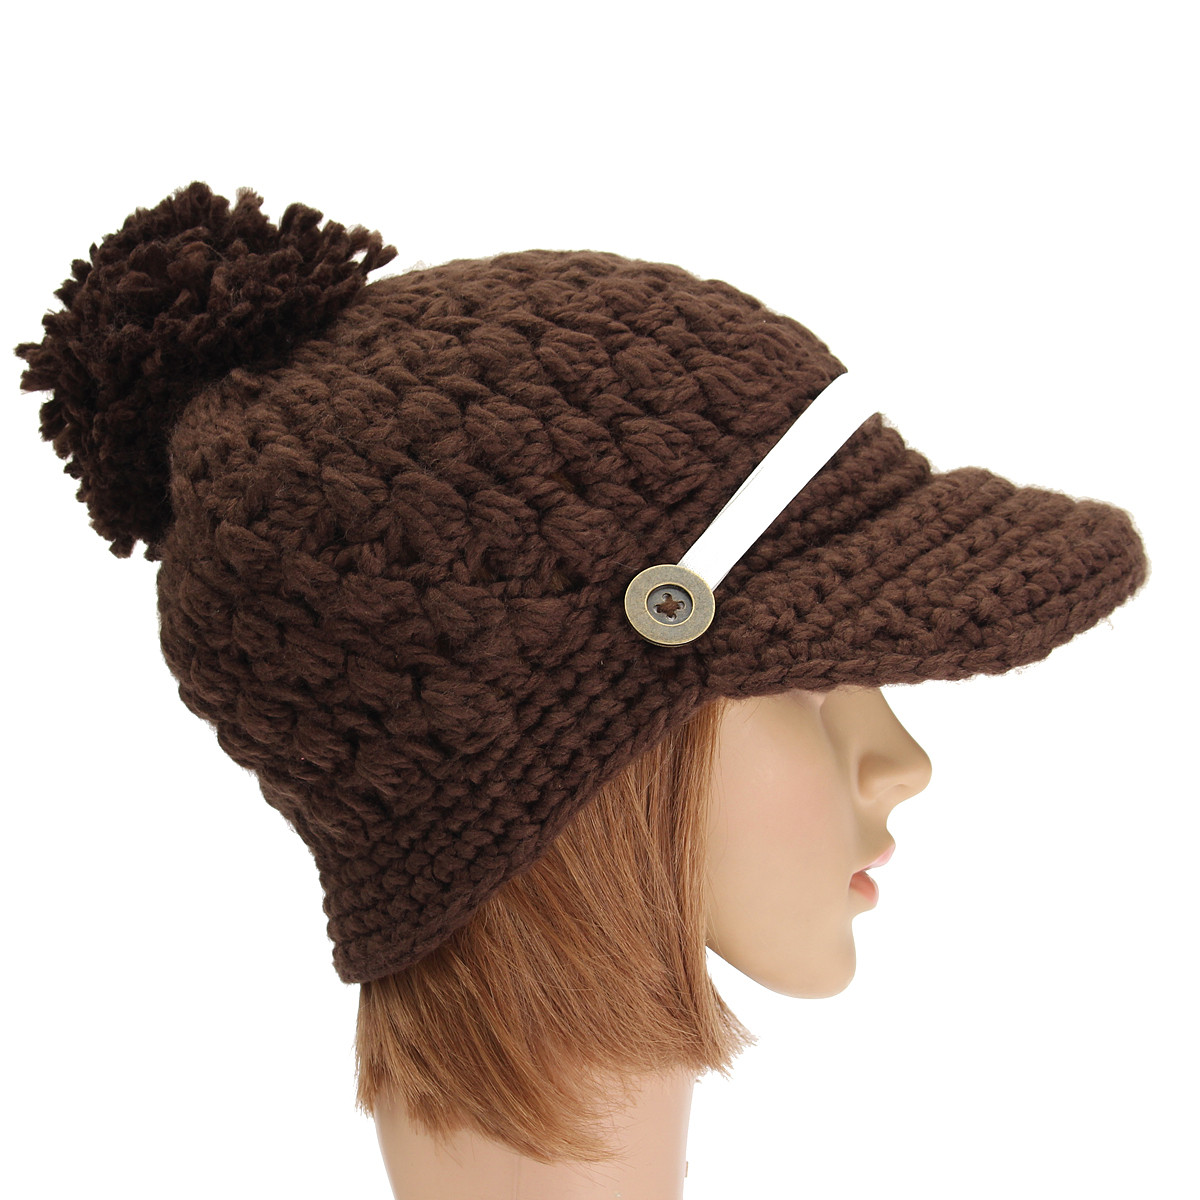 Women Ladies Braided Knitted Baggy Beanie Knit Crochet Ski Hat Button Decorative Baseball Cap